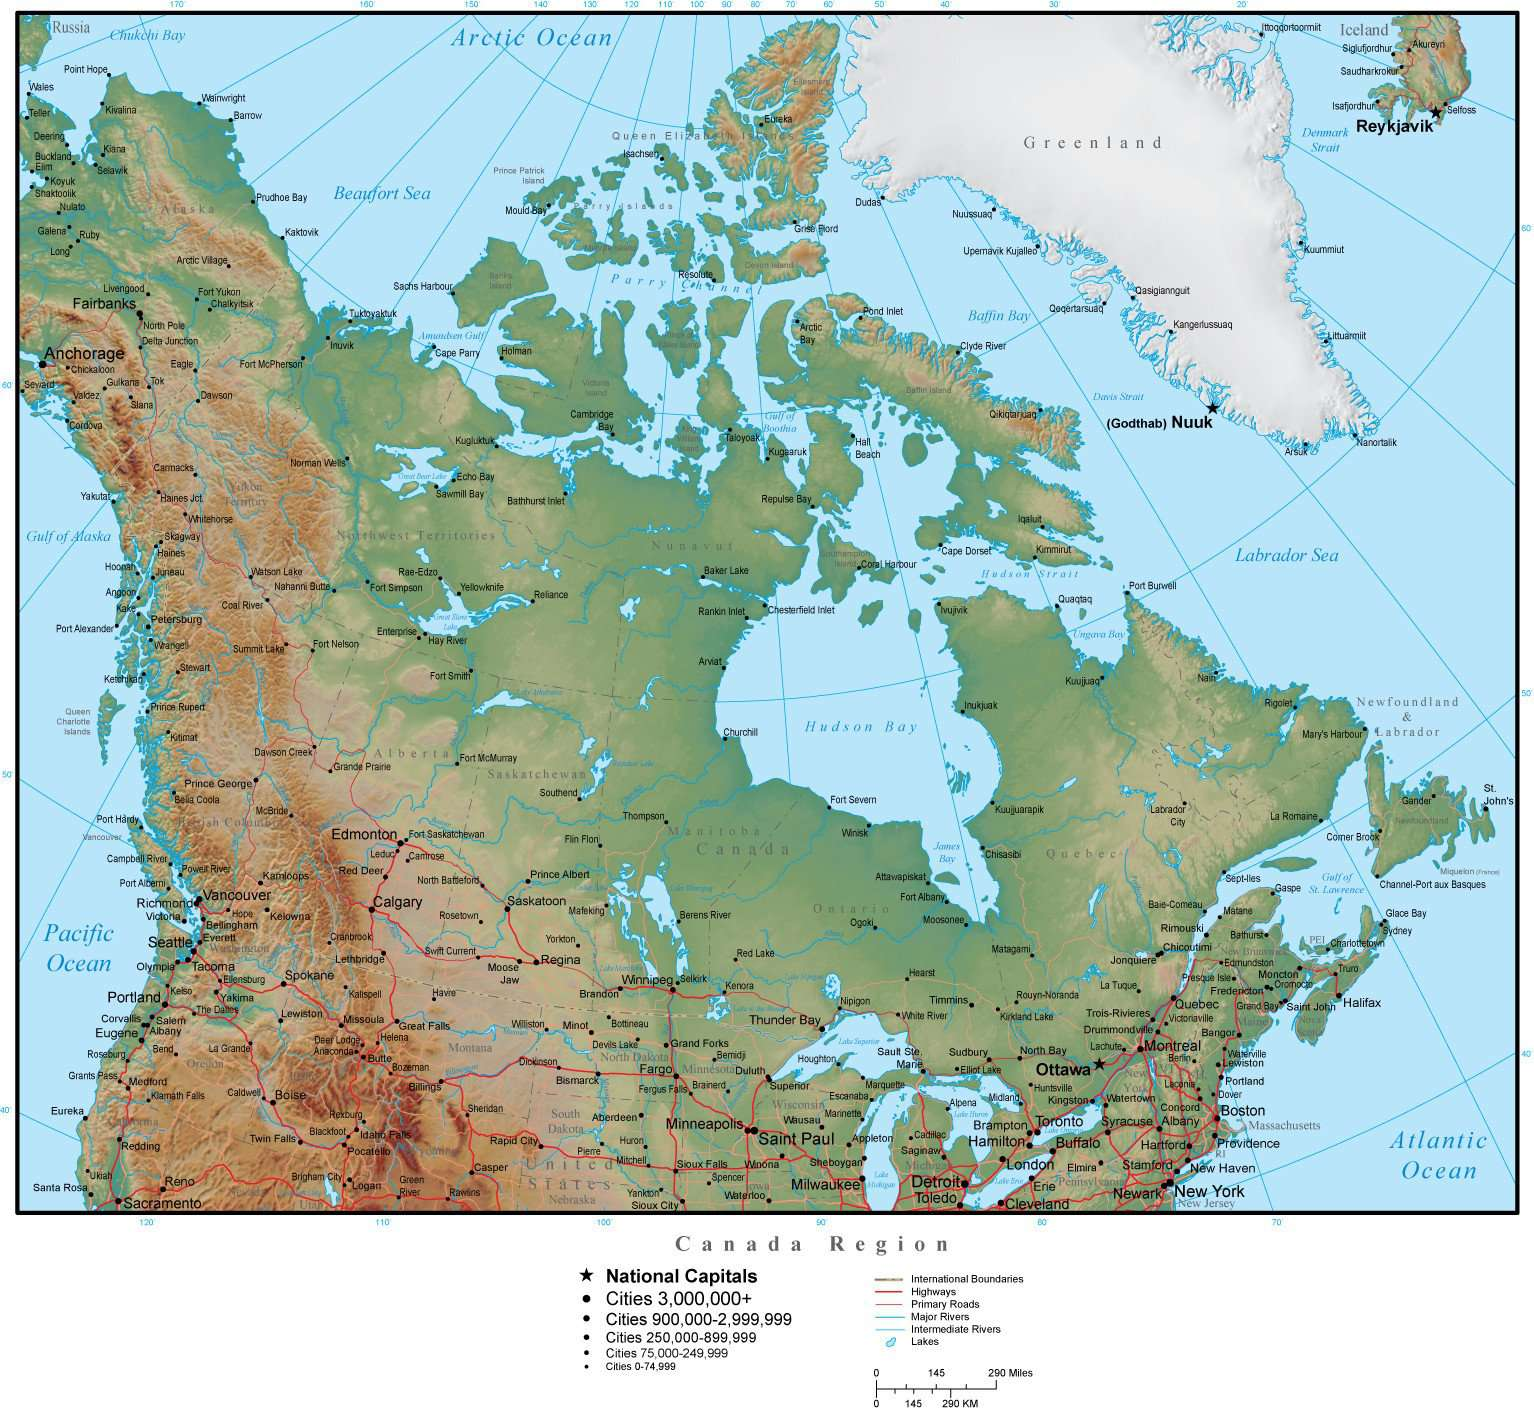 Map Of Canada And The States.Canada Region Map Plus Terrain With Countries Us States Canadian Provinces Cities Roads Water Features